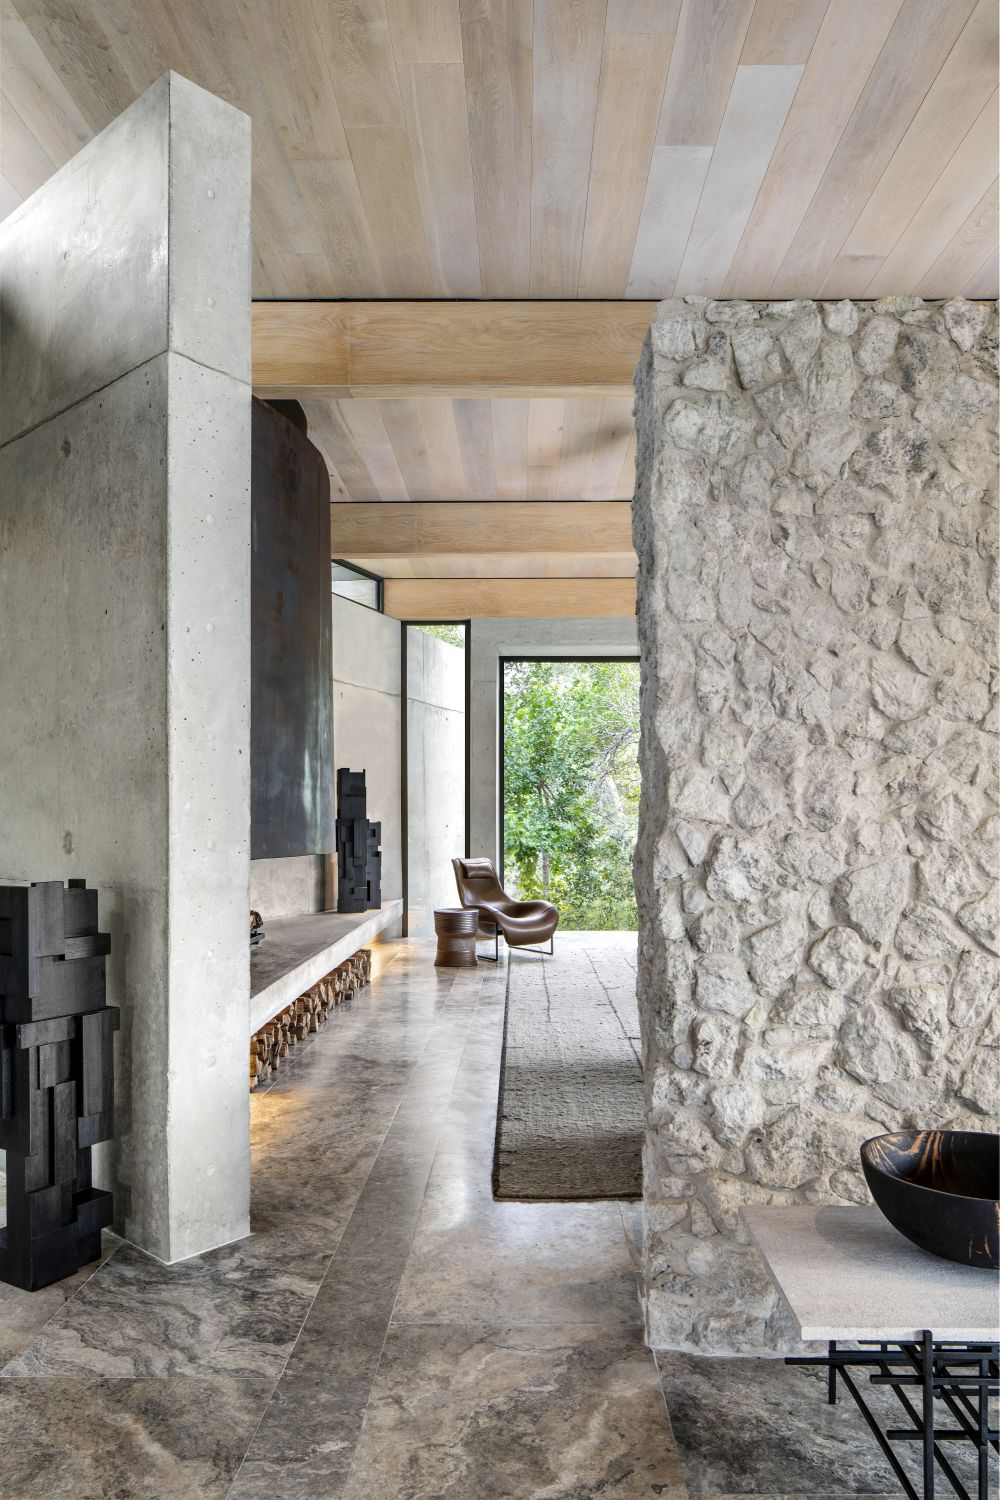 The overall simplicity of the interior design allows the focus to be on the views and the exterior